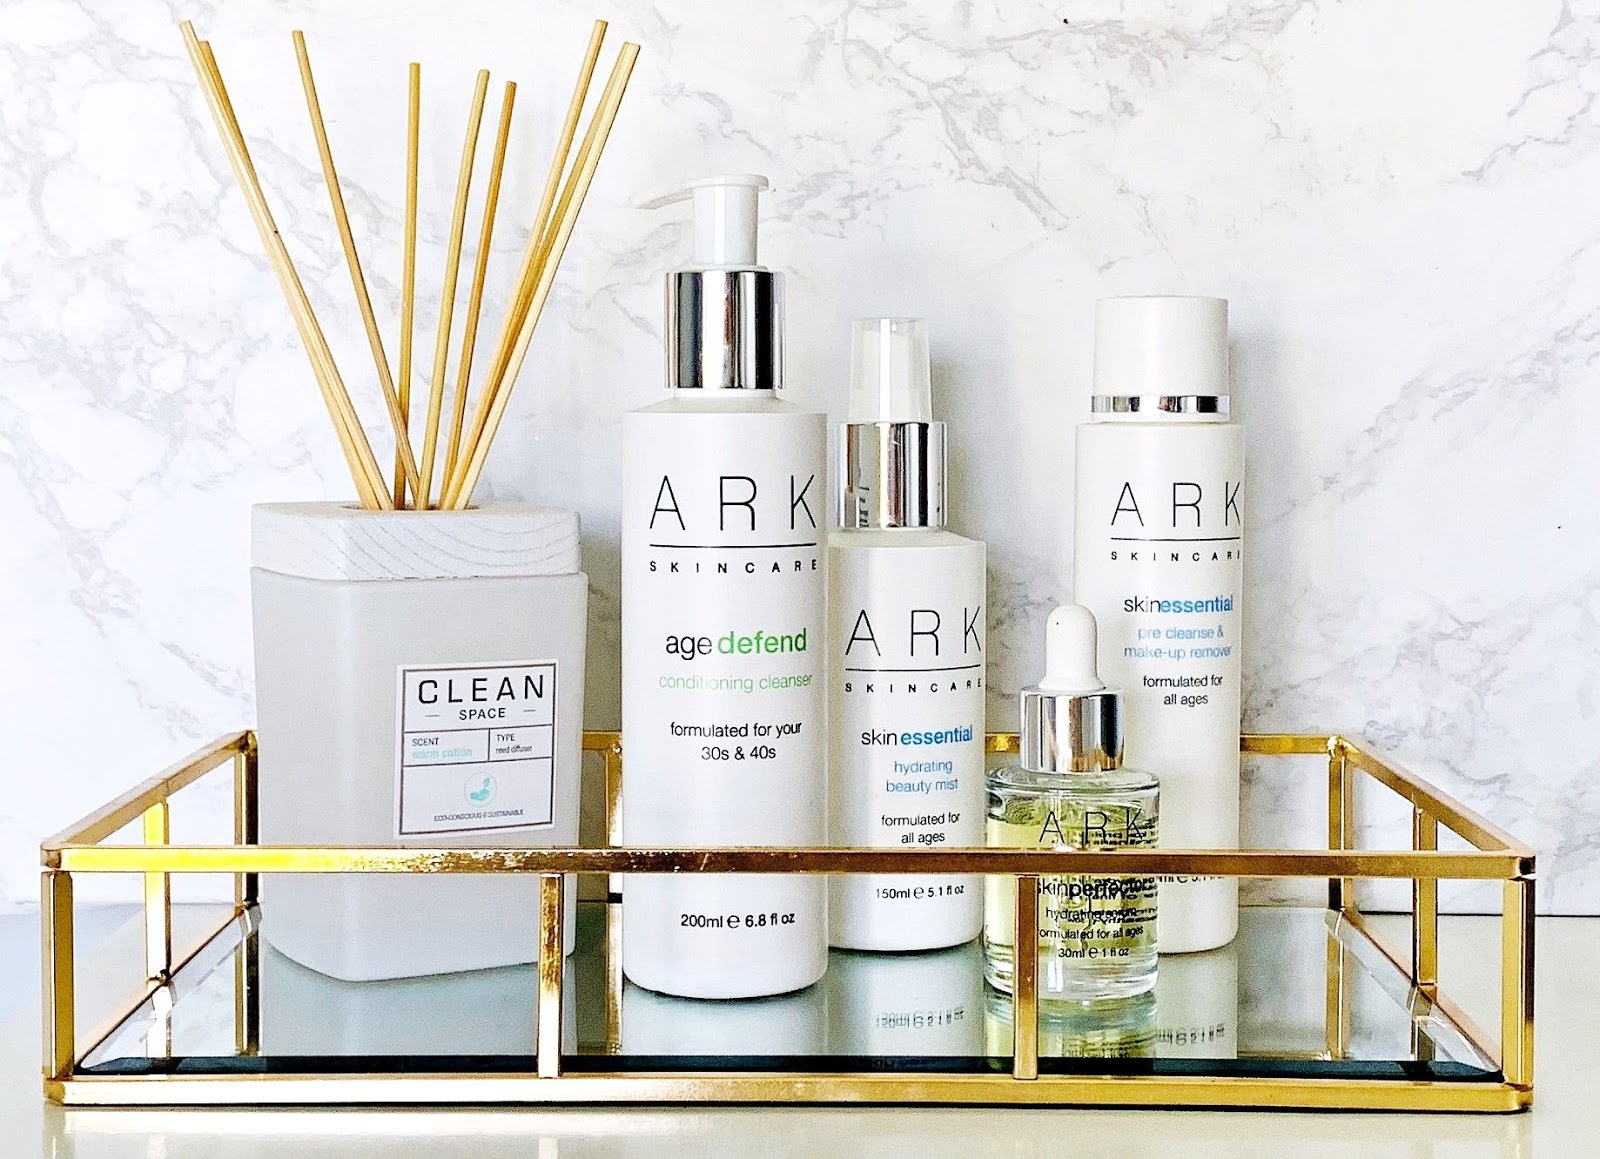 Ark skincare review